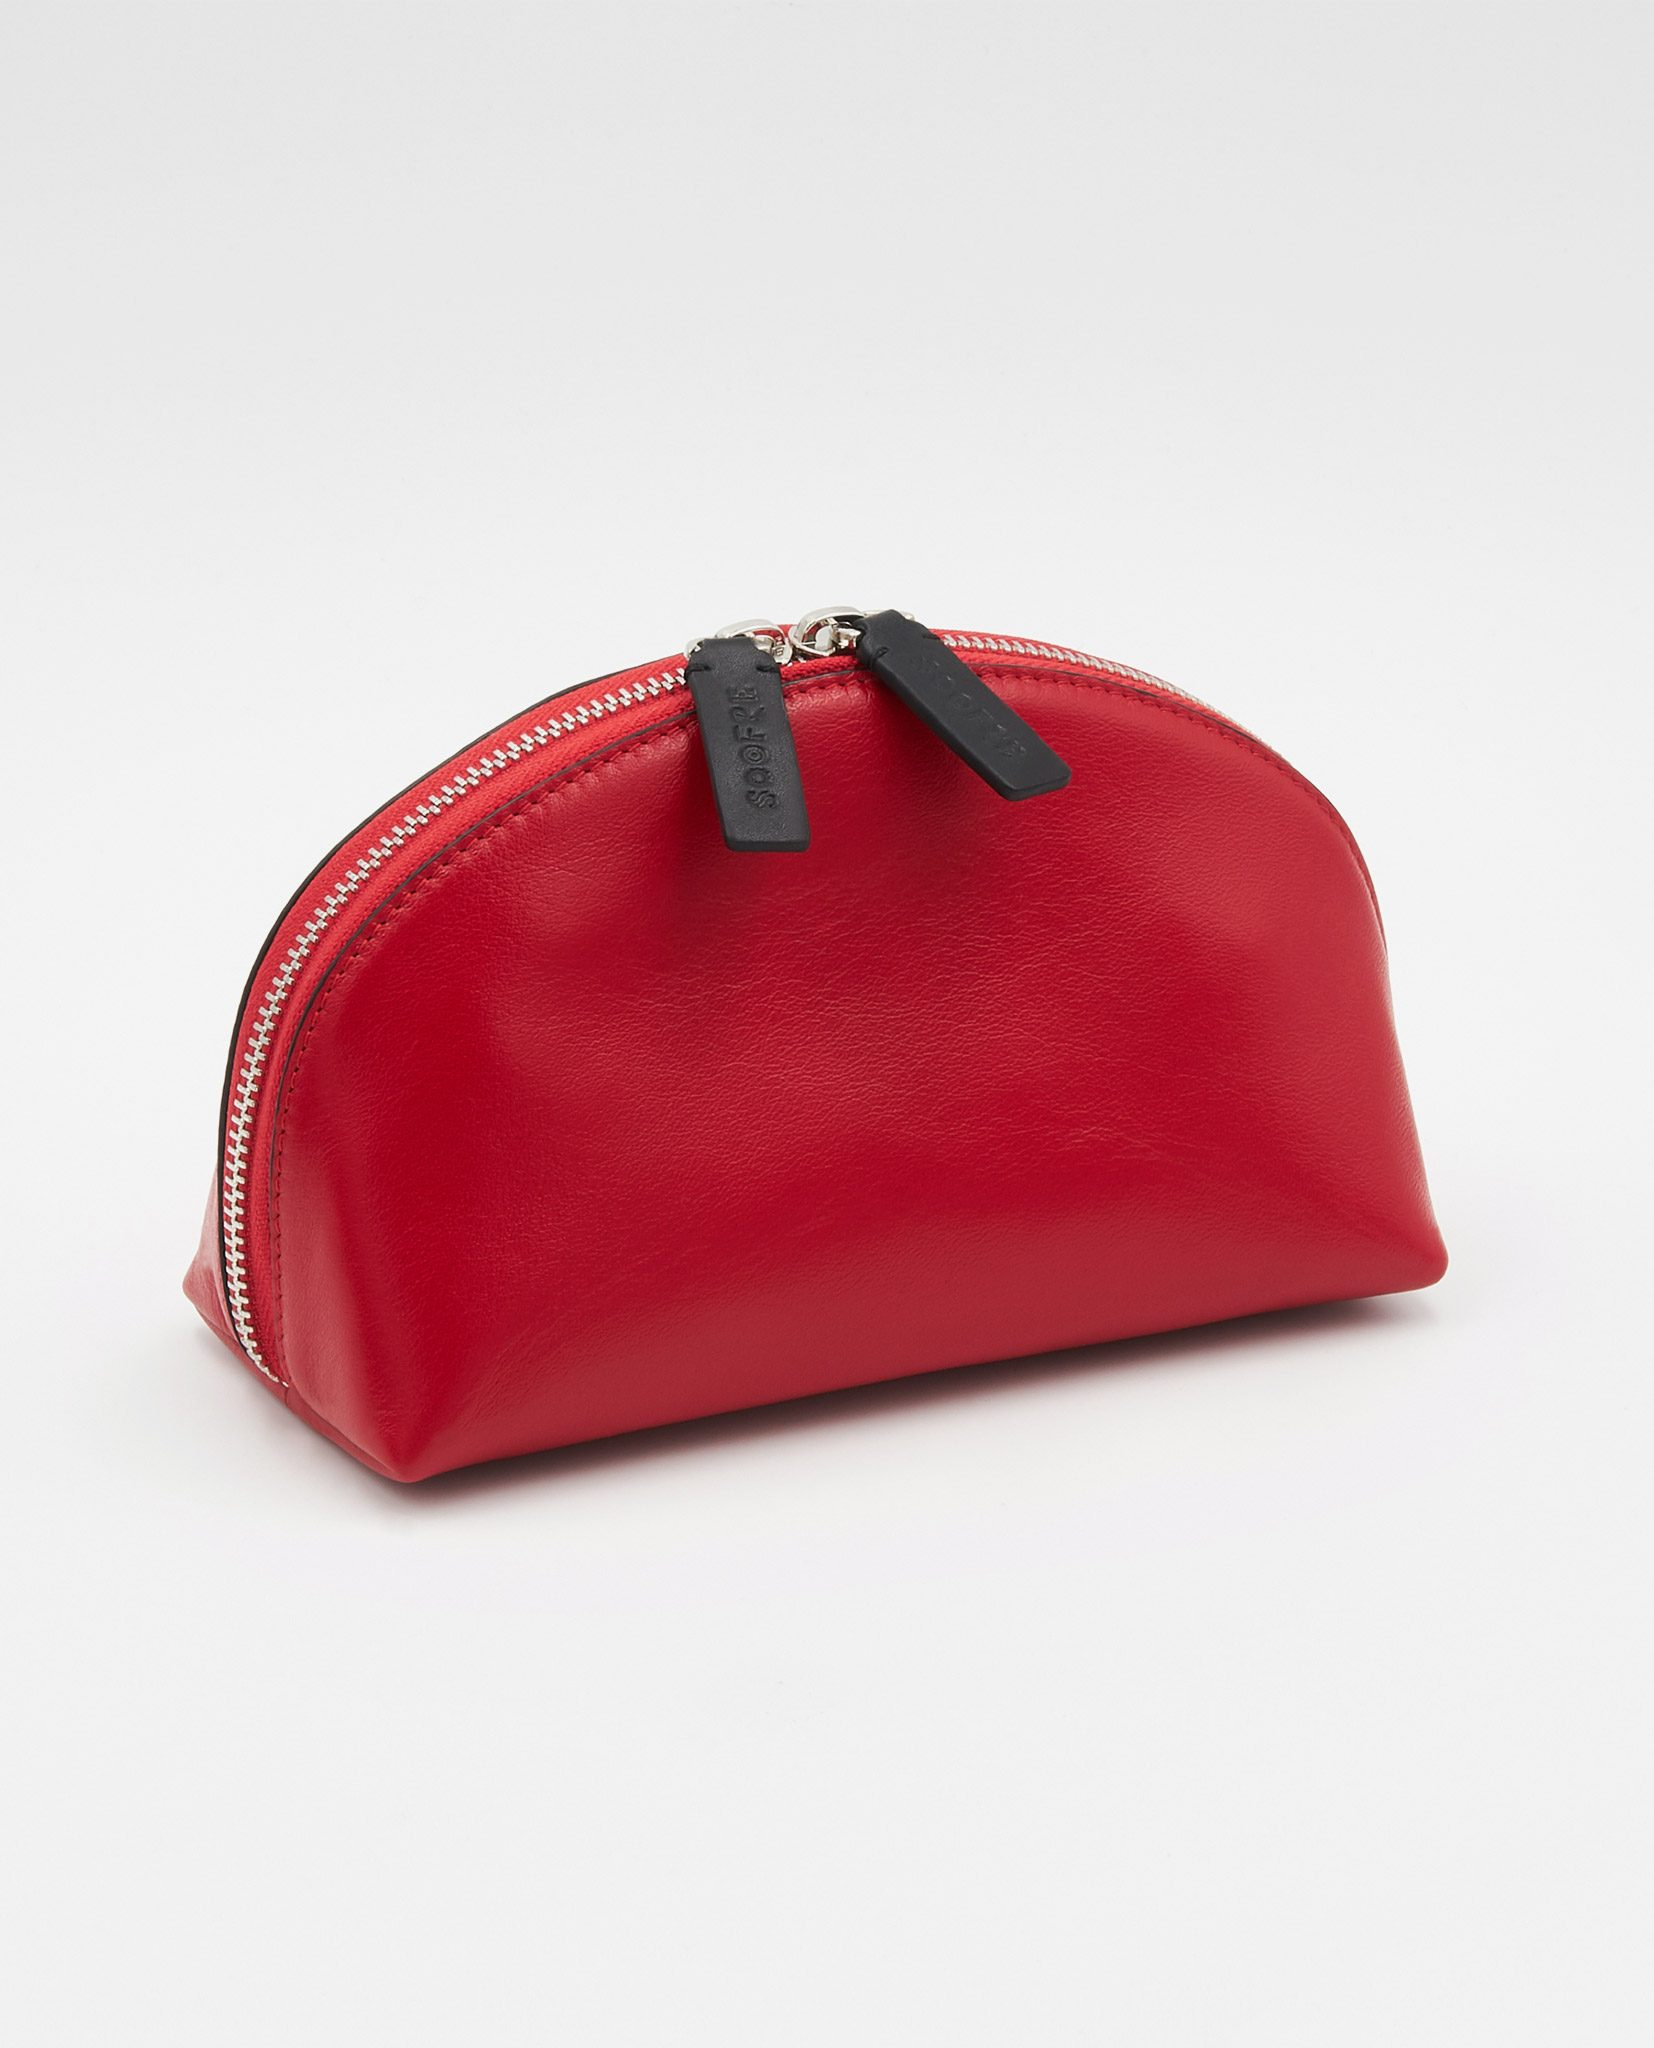 Soofre Smooth Leather Cosmetic Bag Red Black